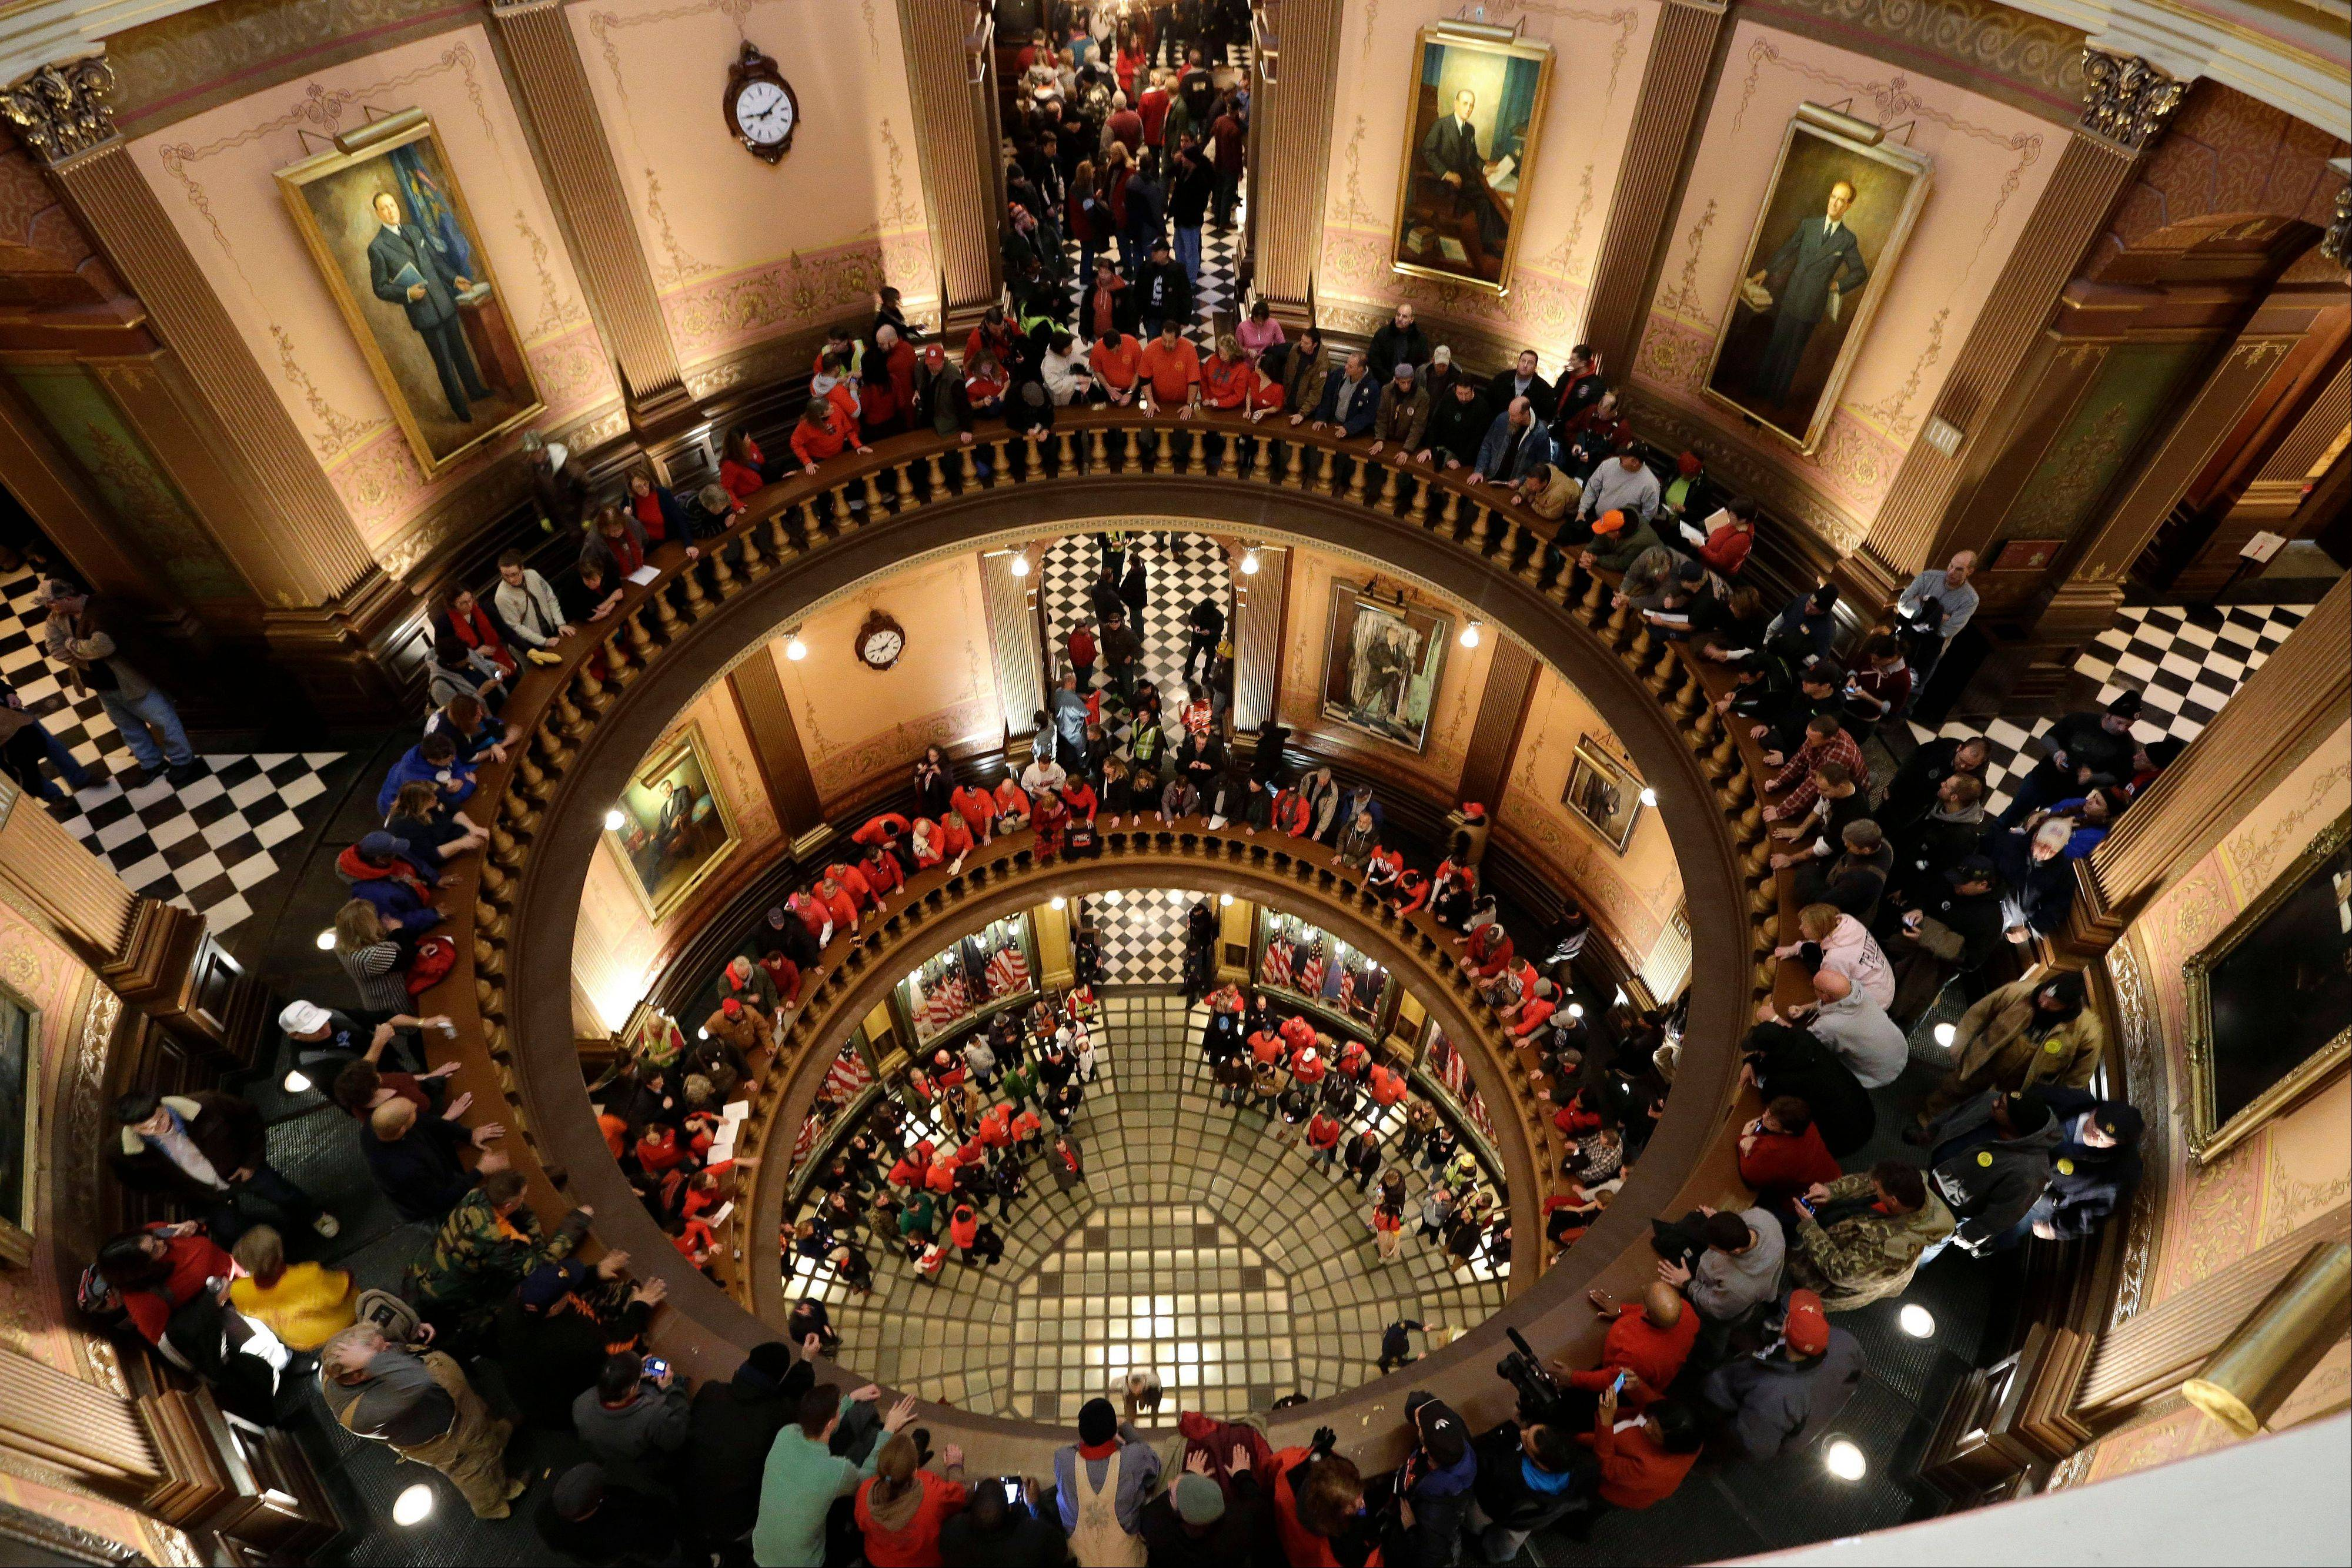 Protesters gather for a rally in the State Capitol rotunda in Lansing, Mich., Tuesday, Dec. 11, 2012. The crowd is protesting right-to-work legislation passed last week.